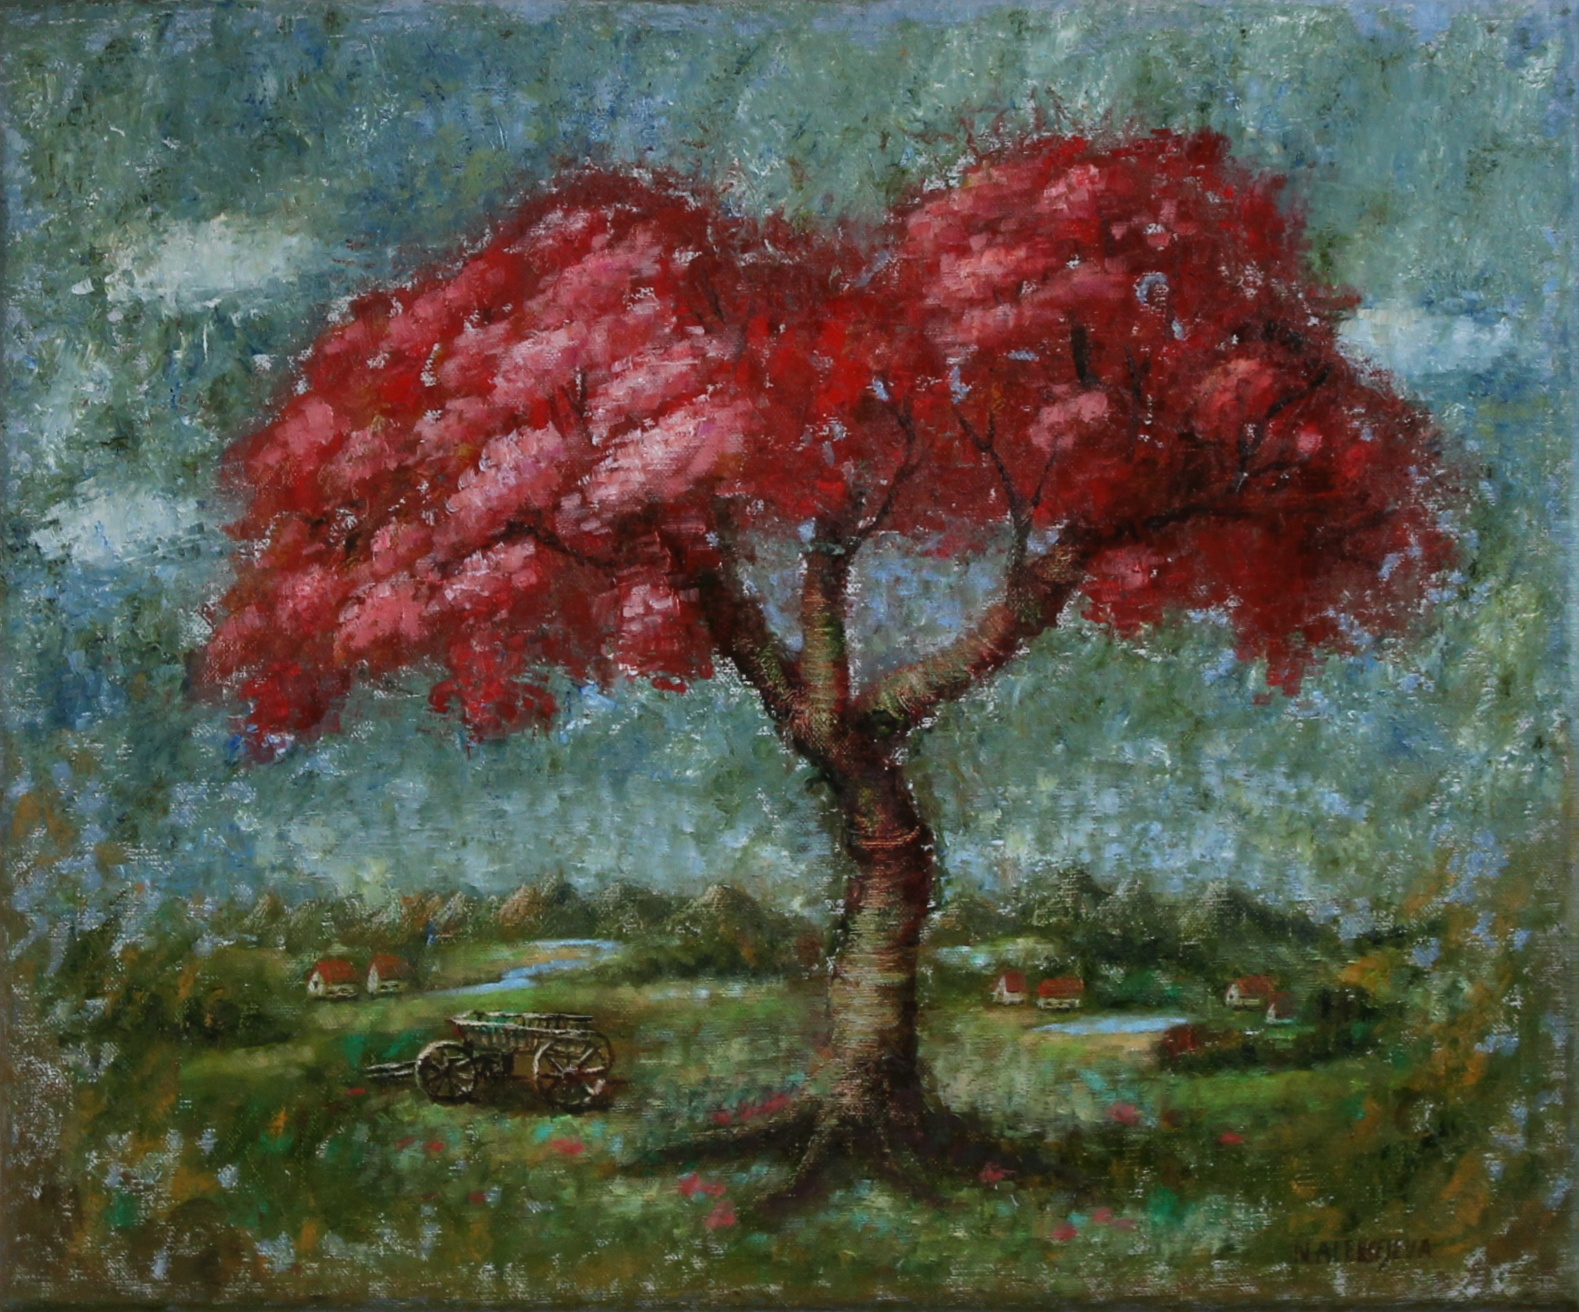 ''Blooming pomegranate tree'' (2021)